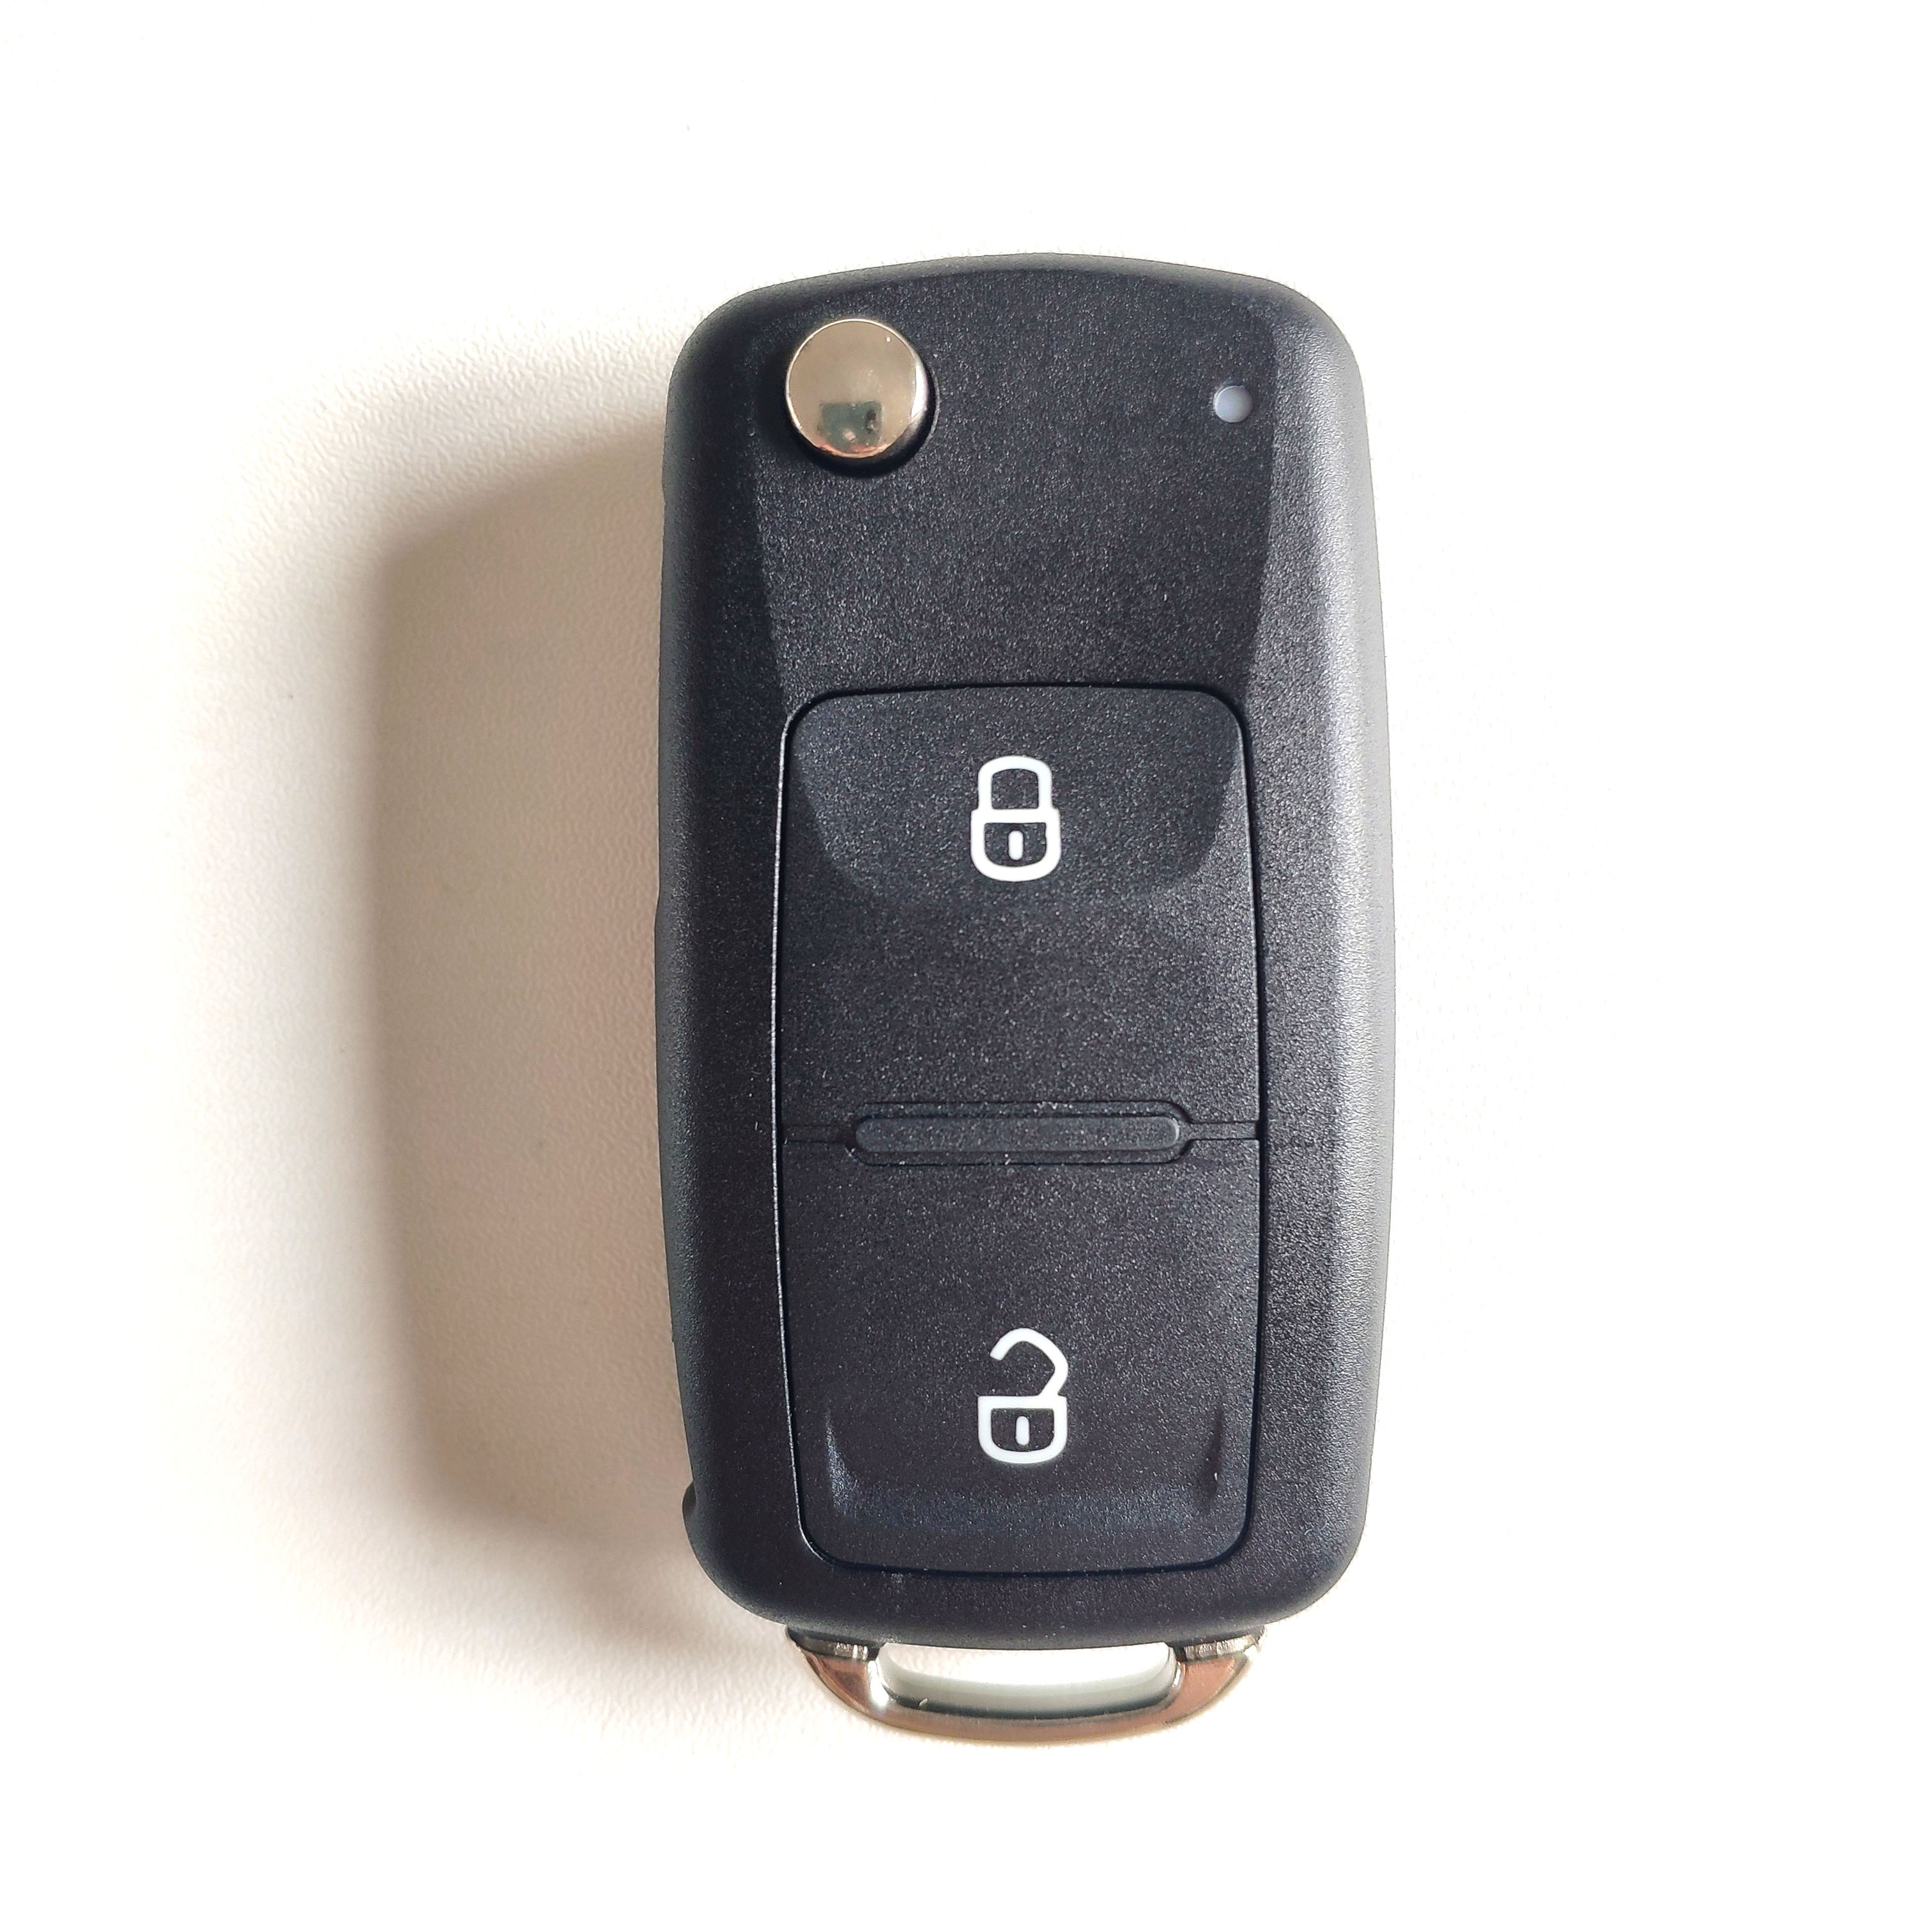 2 Buttons 434 MHz Flip Remote Key for VW ID48 7K0 837 202AD